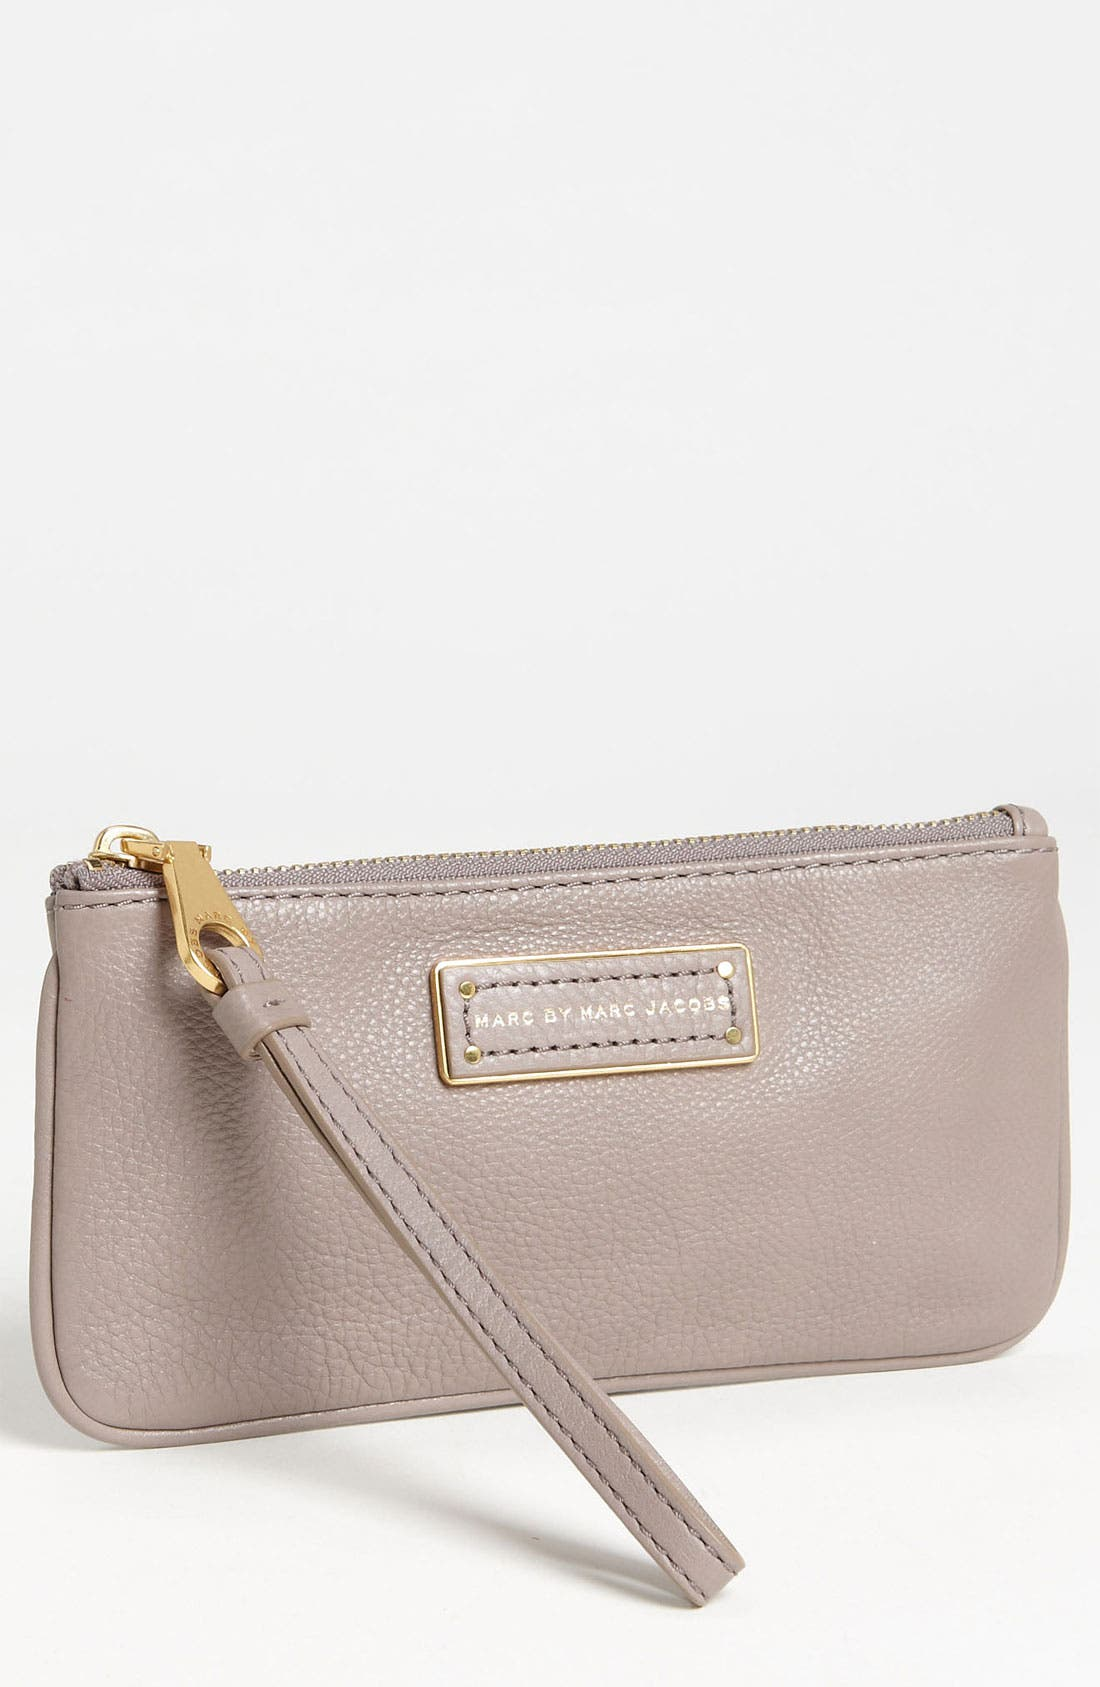 Alternate Image 1 Selected - MARC BY MARC JACOBS 'Too Hot to Handle - Banklet' Wristlet Pouch